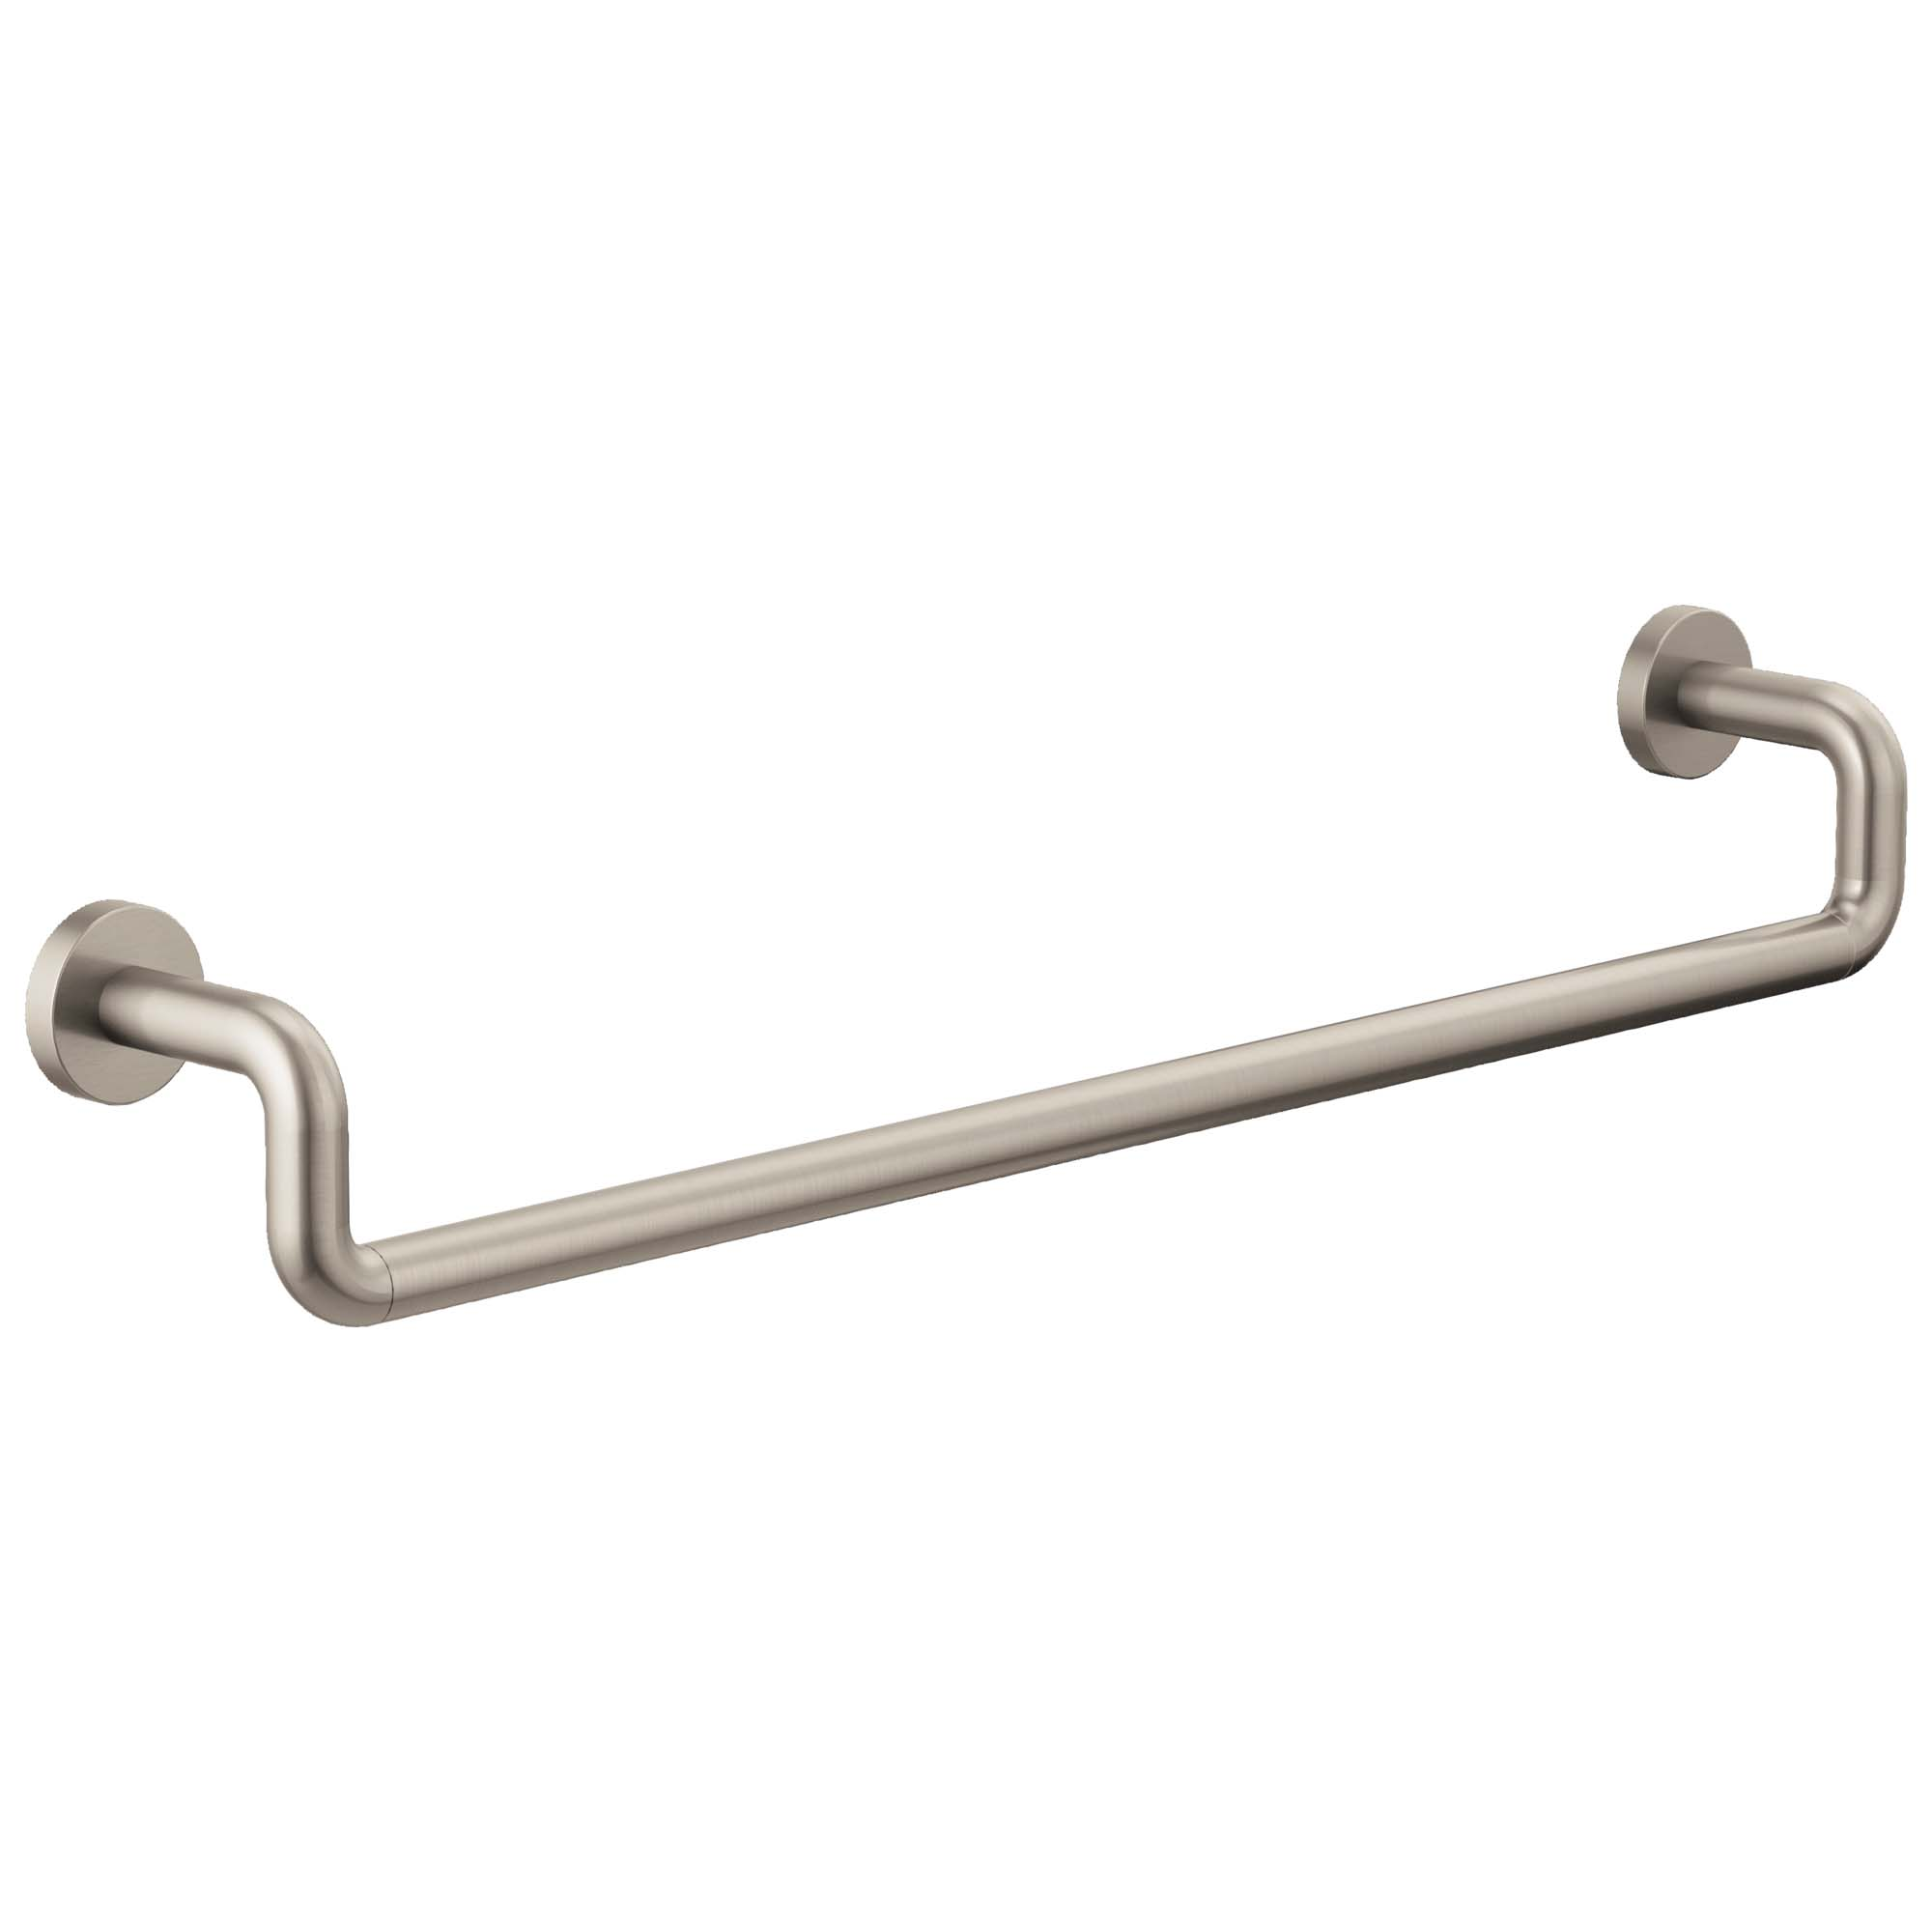 "Brizo 692435-NK Litze 24"" Towel Bar - Luxe Nickel"